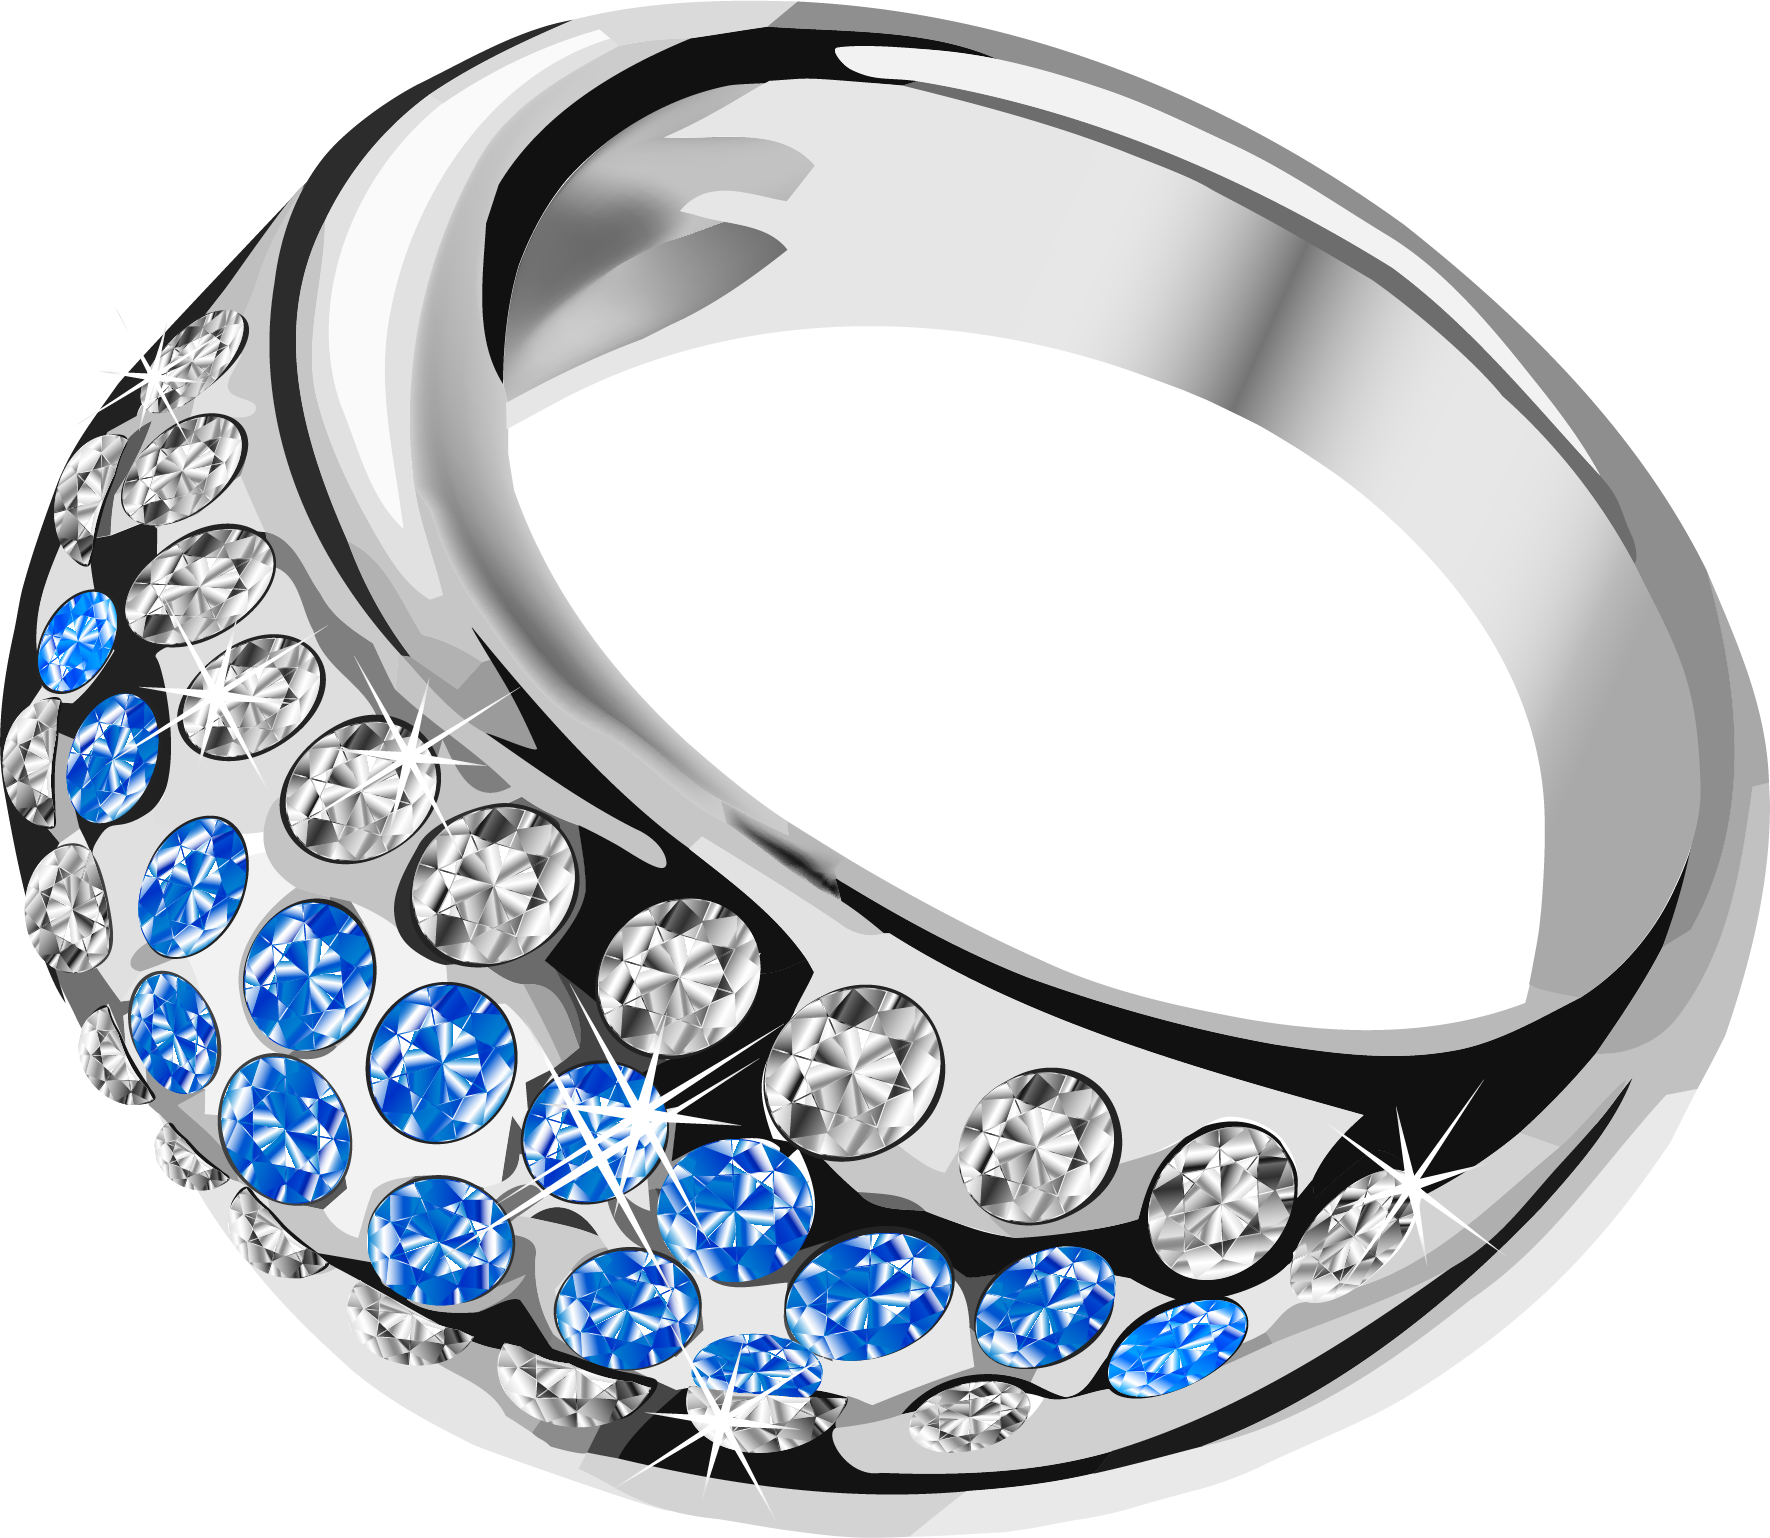 Diamond clipart platinum. Silver ring with blue